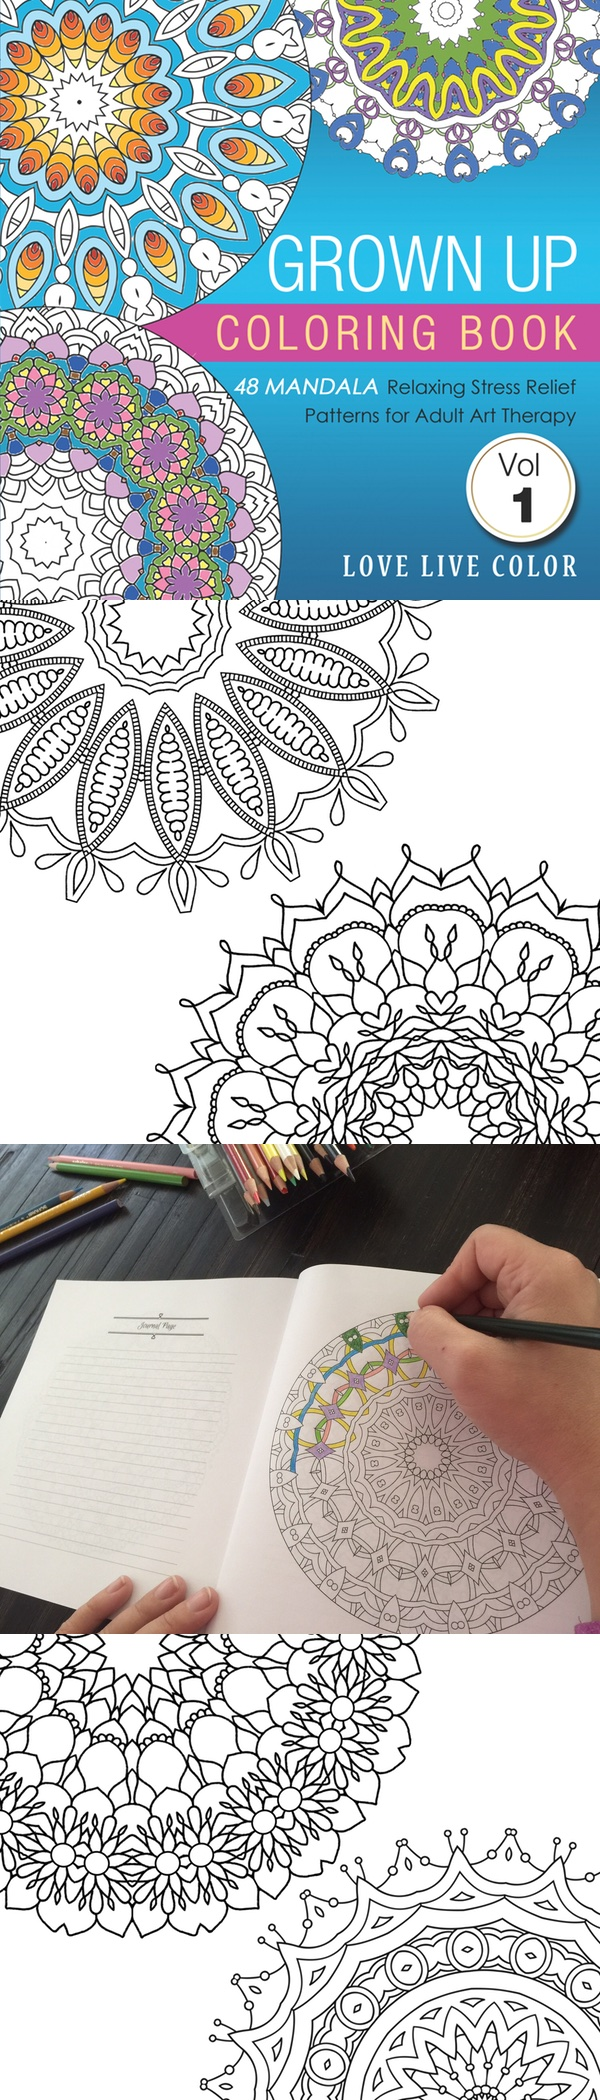 Discover More Calm, Creativity, Fun And Relaxation In Your Life In Just 5 Minutes Per Day With This Coloring Book for Adults from Love Live Color